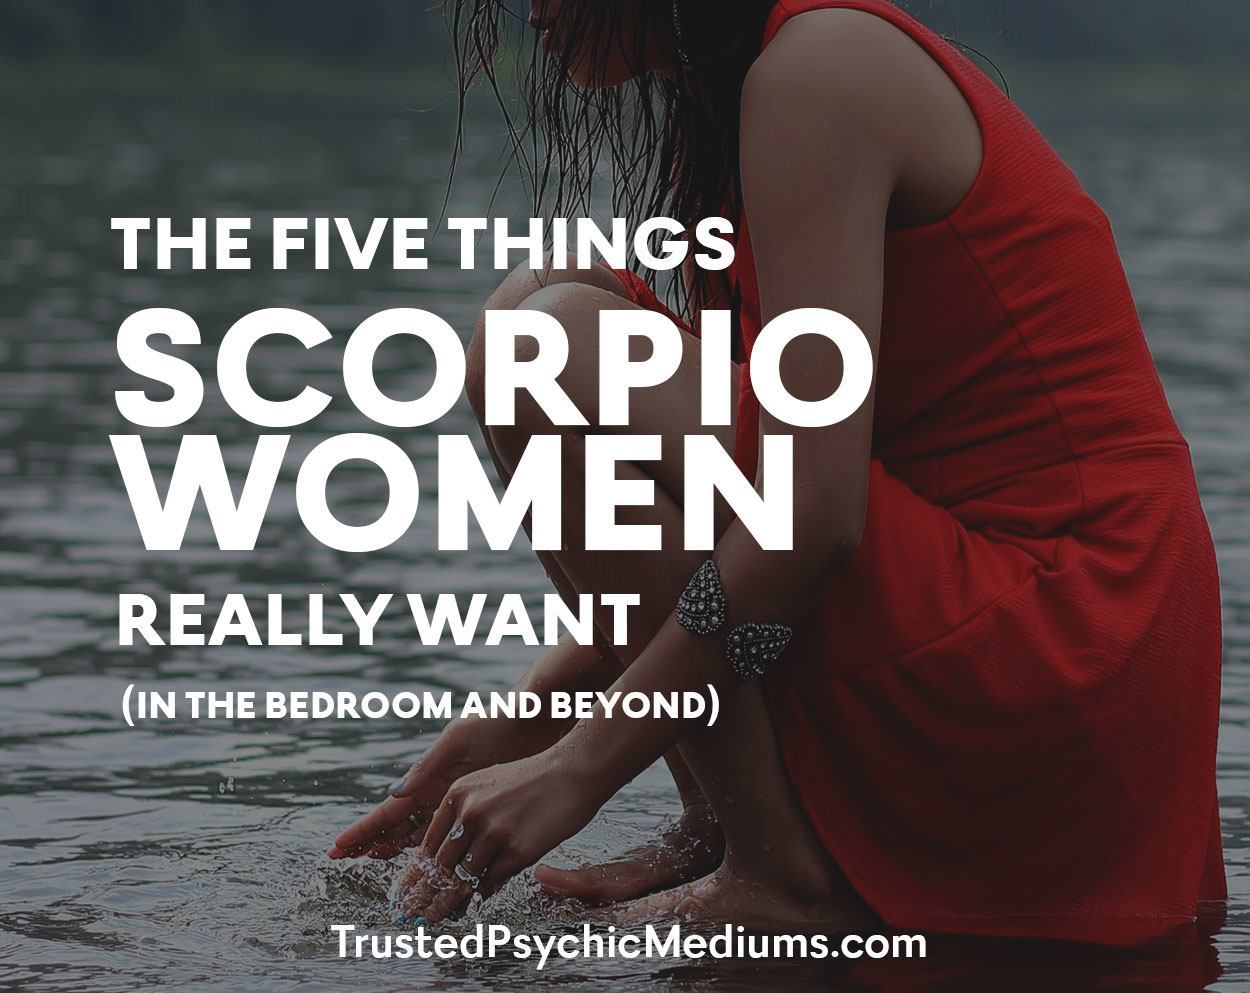 The Five Things Scorpio Women Really Want